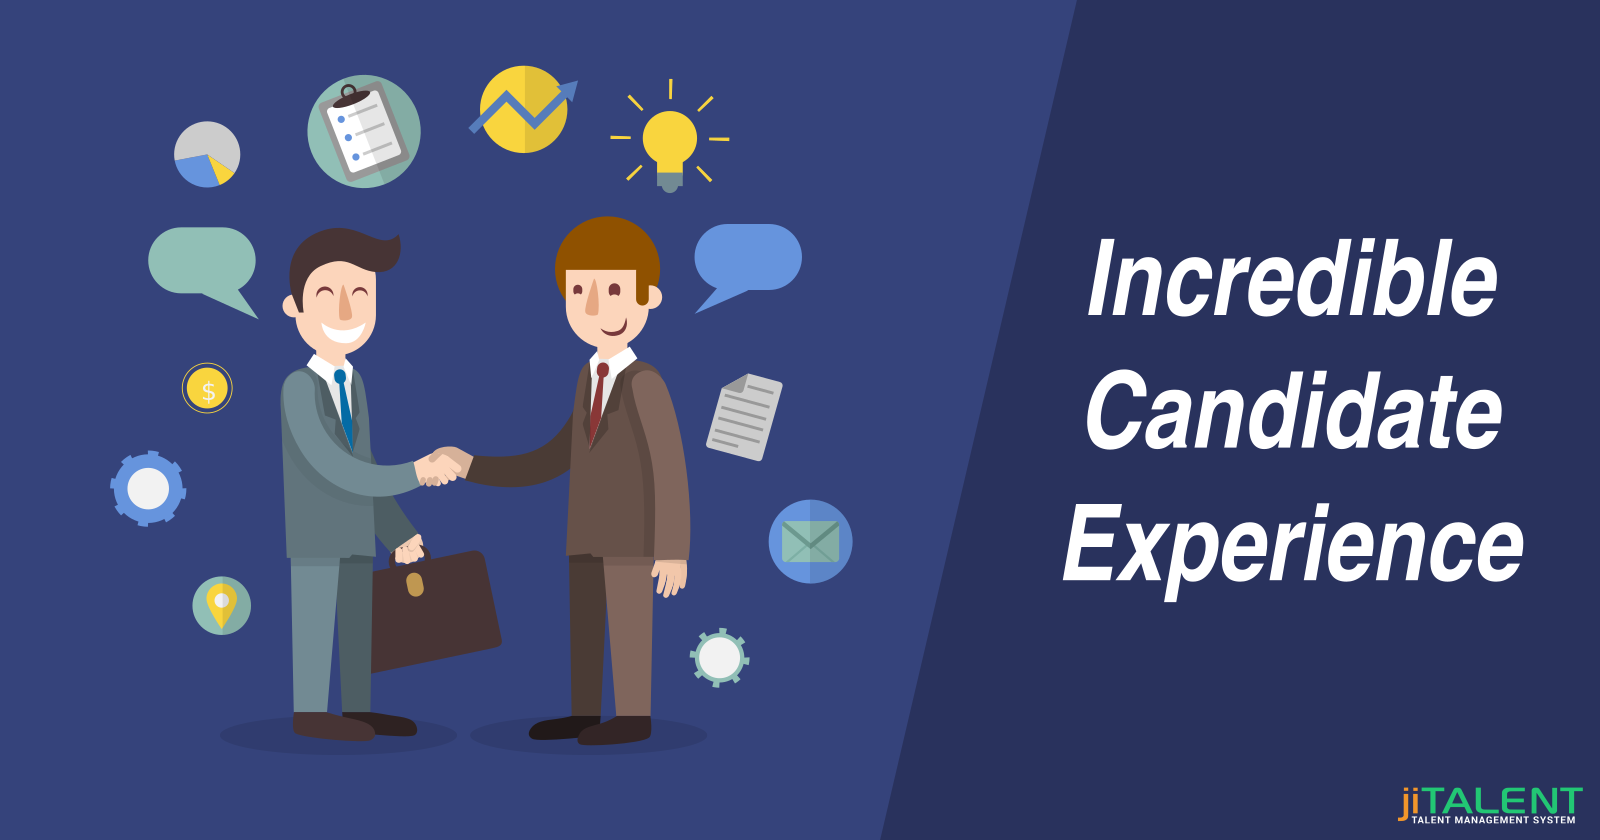 Implementing a Quality Candidate Experience in Your Organization